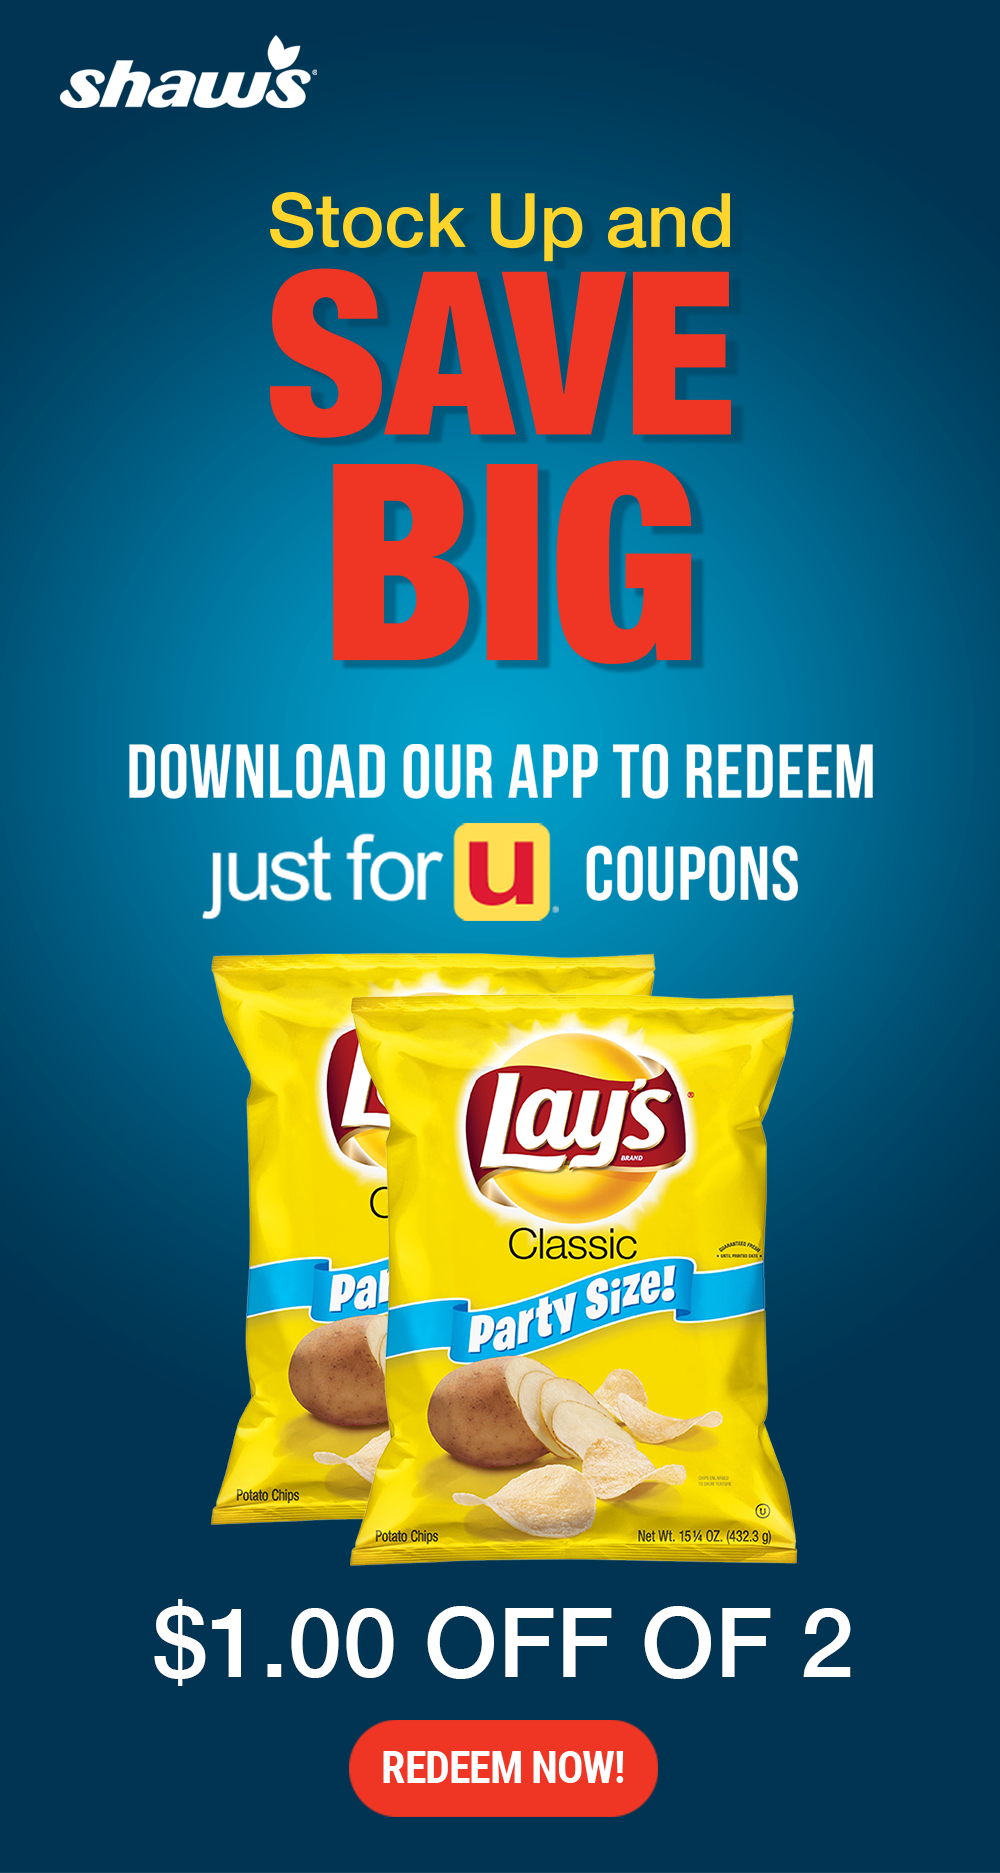 Stock Up and Save Big when you use your just for U® app to